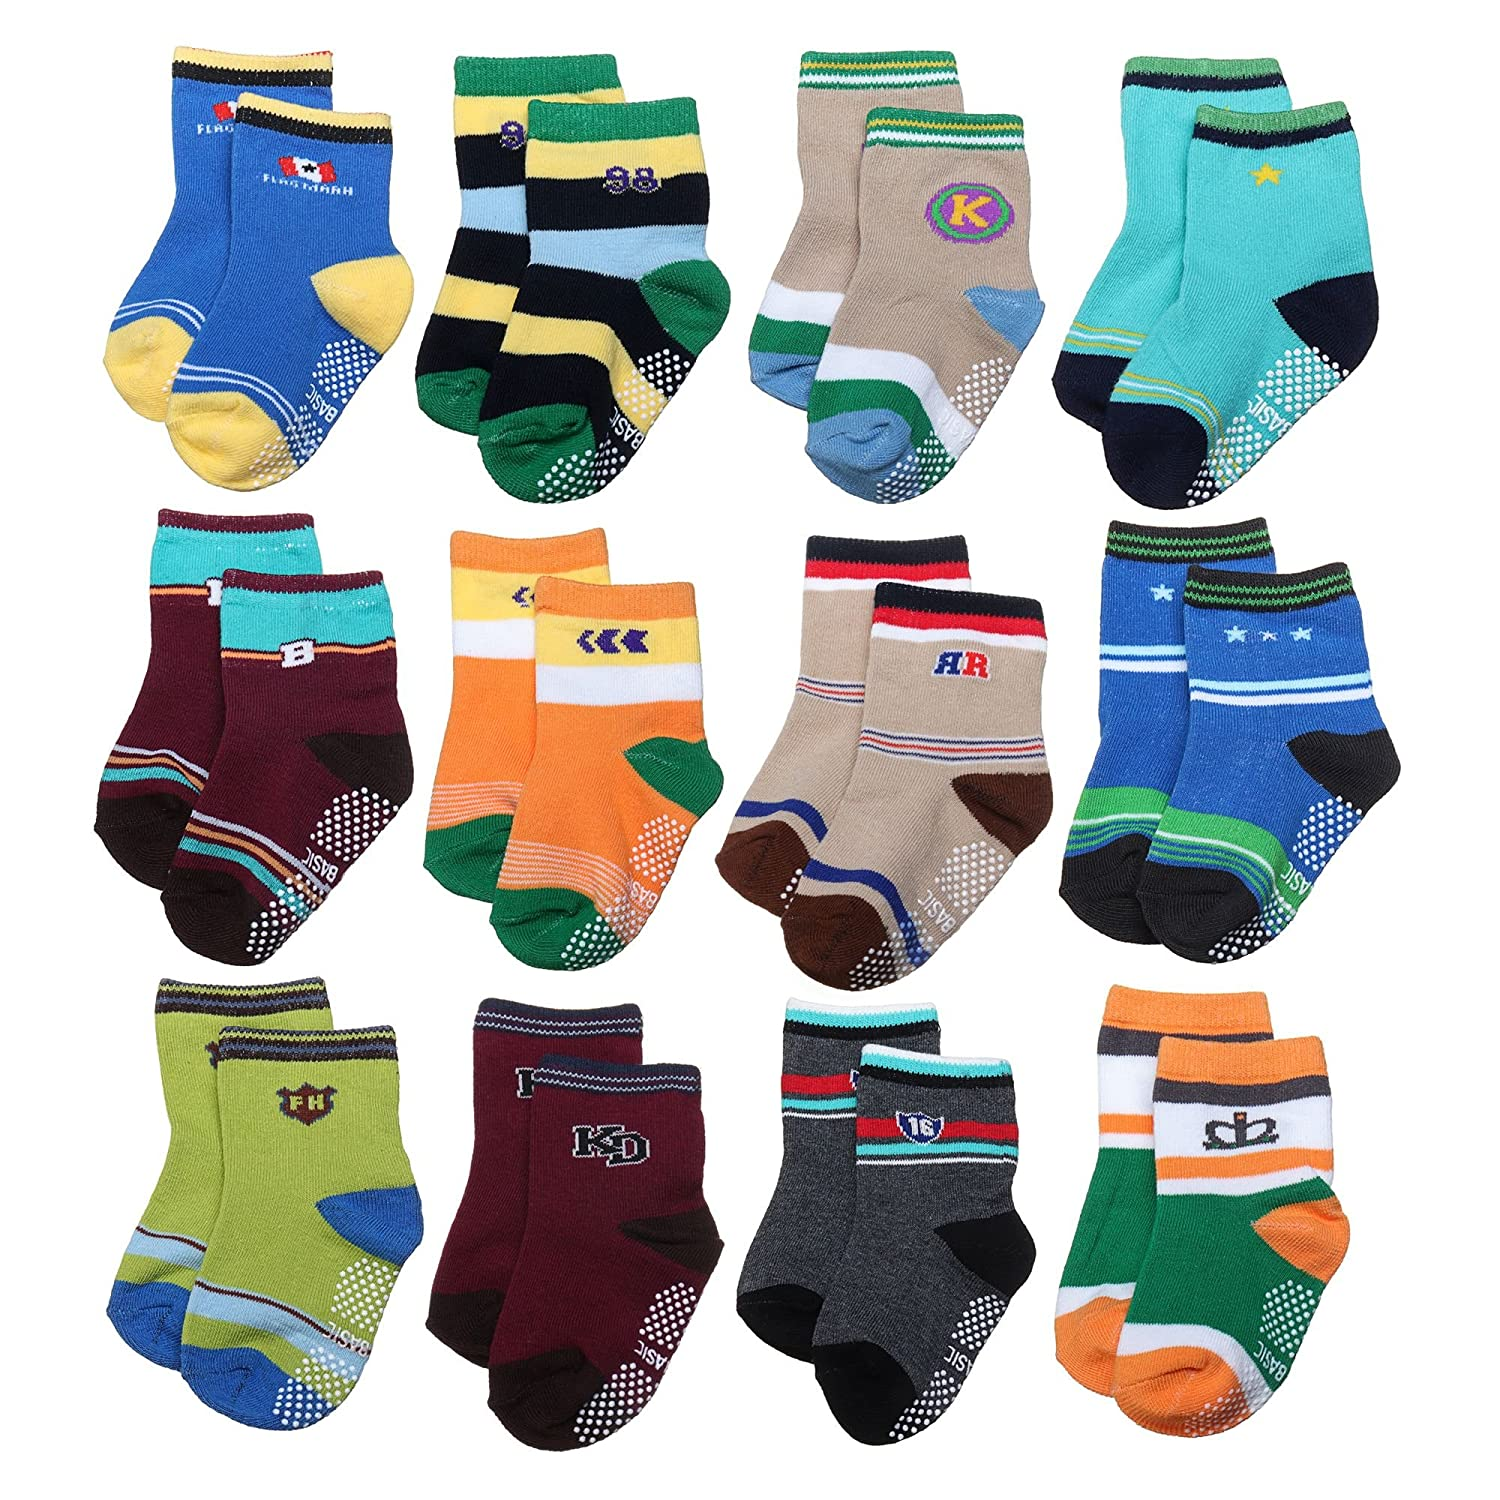 ShoppeWatch 12 Pairs Baby Toddler Socks with Grips Anti-Slip Non-Skid Bottoms For Kids Infant Babies Boys 2T and 3T Walkers BBSK45B